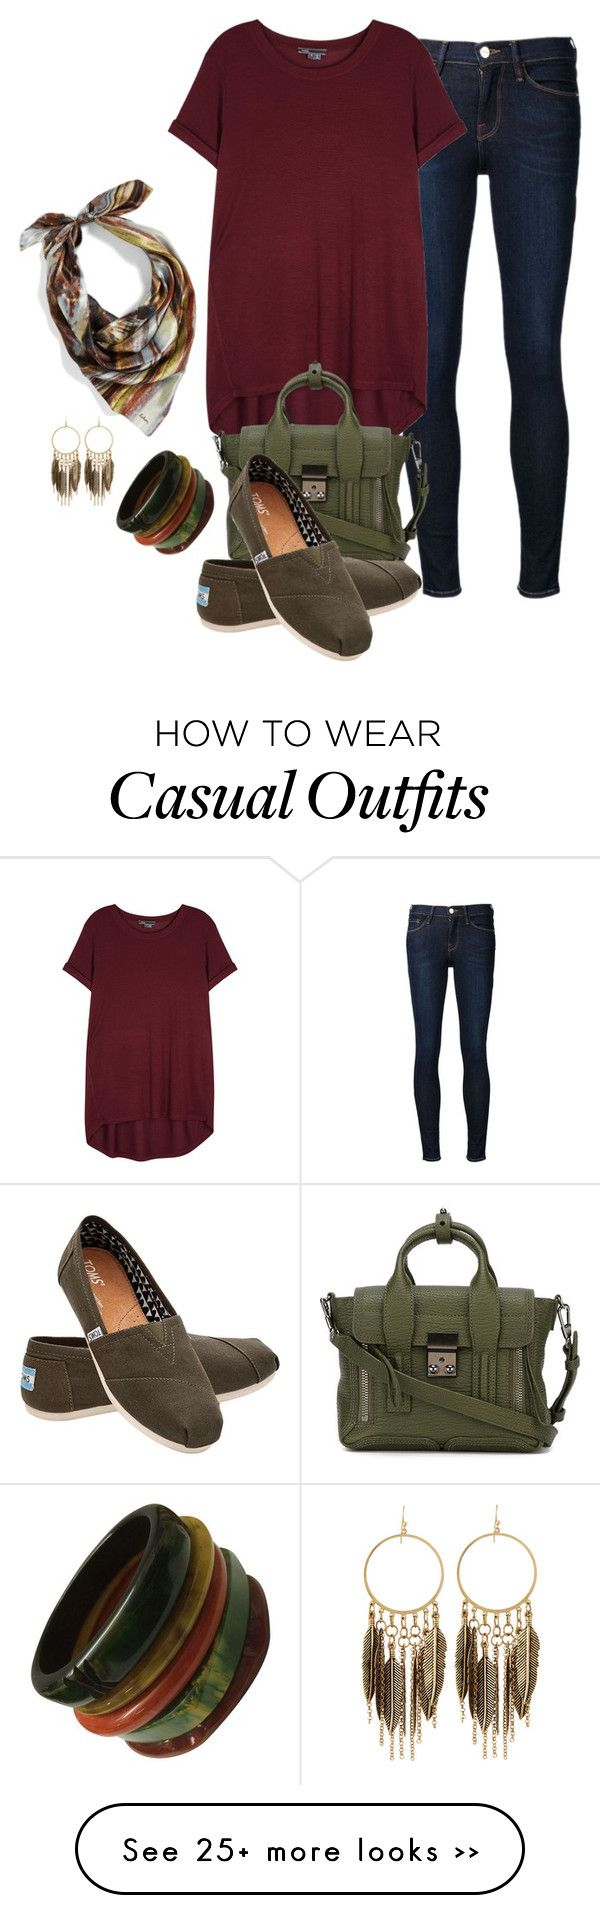 """casual day"" by hcc71 on Polyvore featuring Frame Denim, Vince, 3.1 Phillip Lim, TOMS, Panacea and Echo"